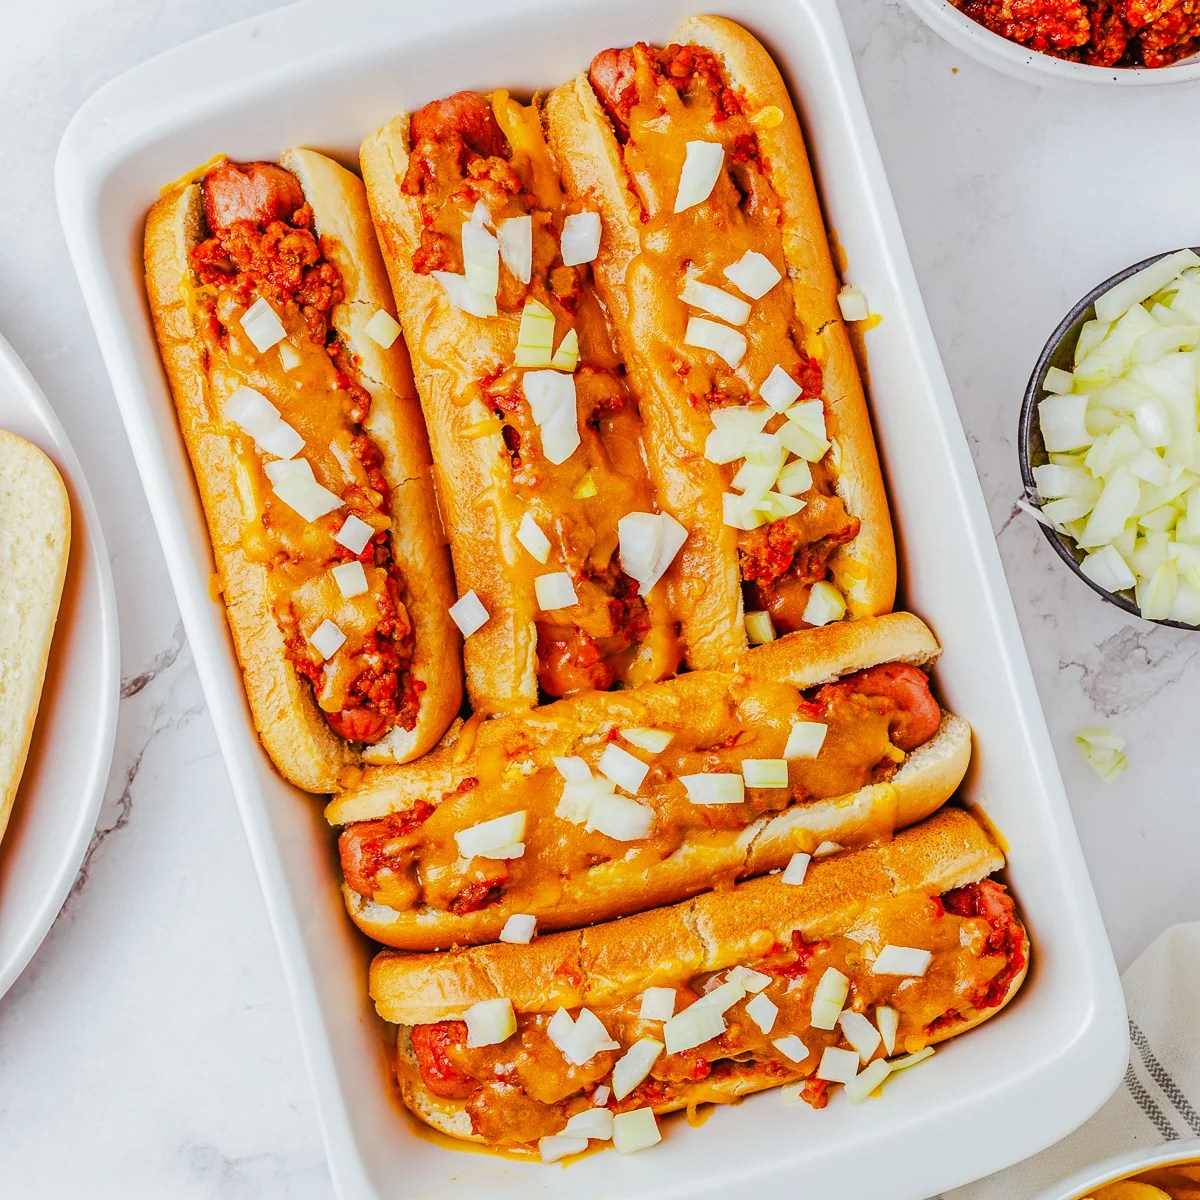 Square overhead image of finished Chili Cheese Dog Recipe topped with onions